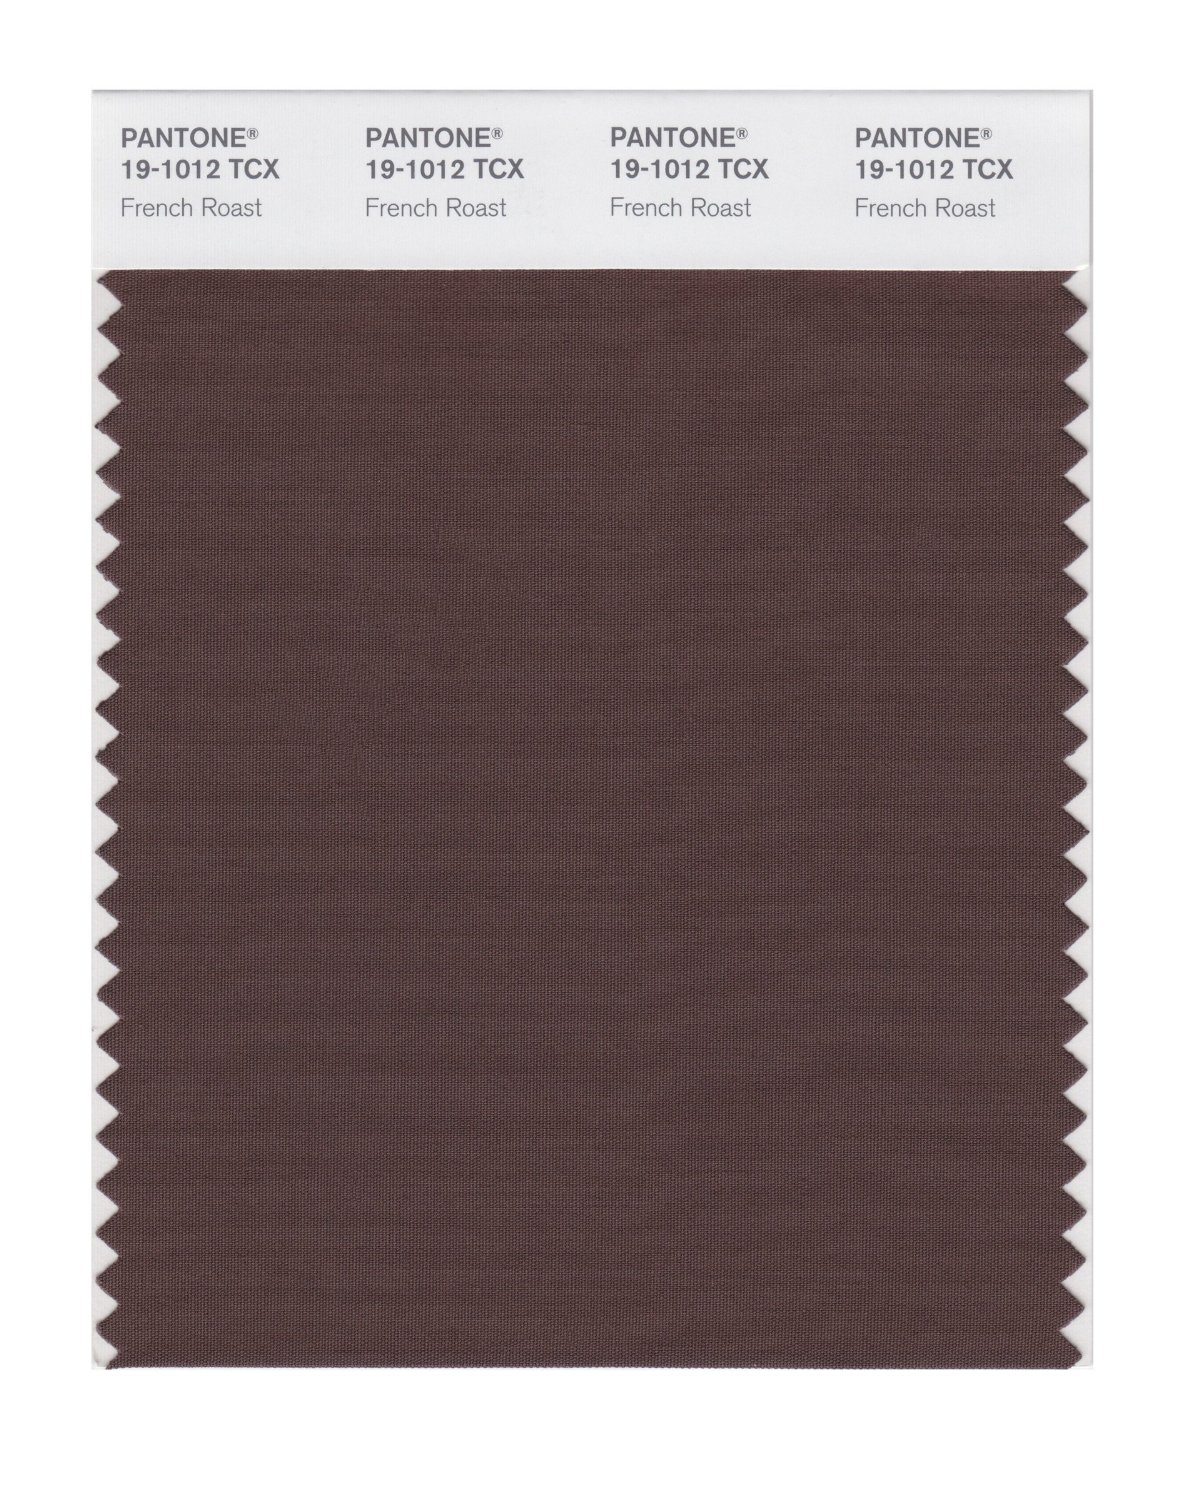 Pantone Smart Swatch 19-1012 French Roast